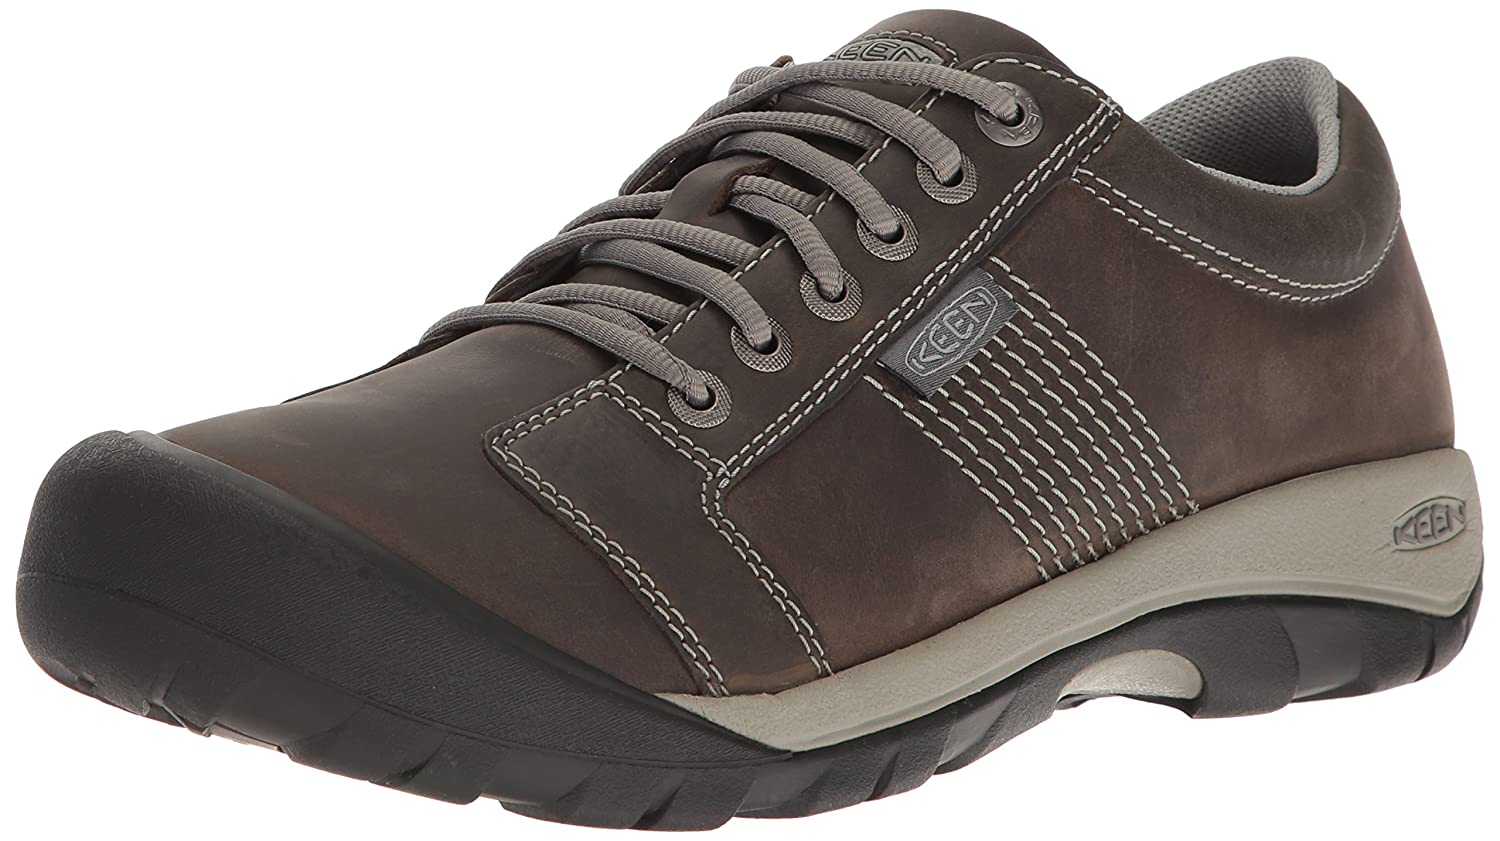 KEEN Men's Austin Shoe B01H8H52L4 16 D(M) US|Gargoyle/Neutral Gray